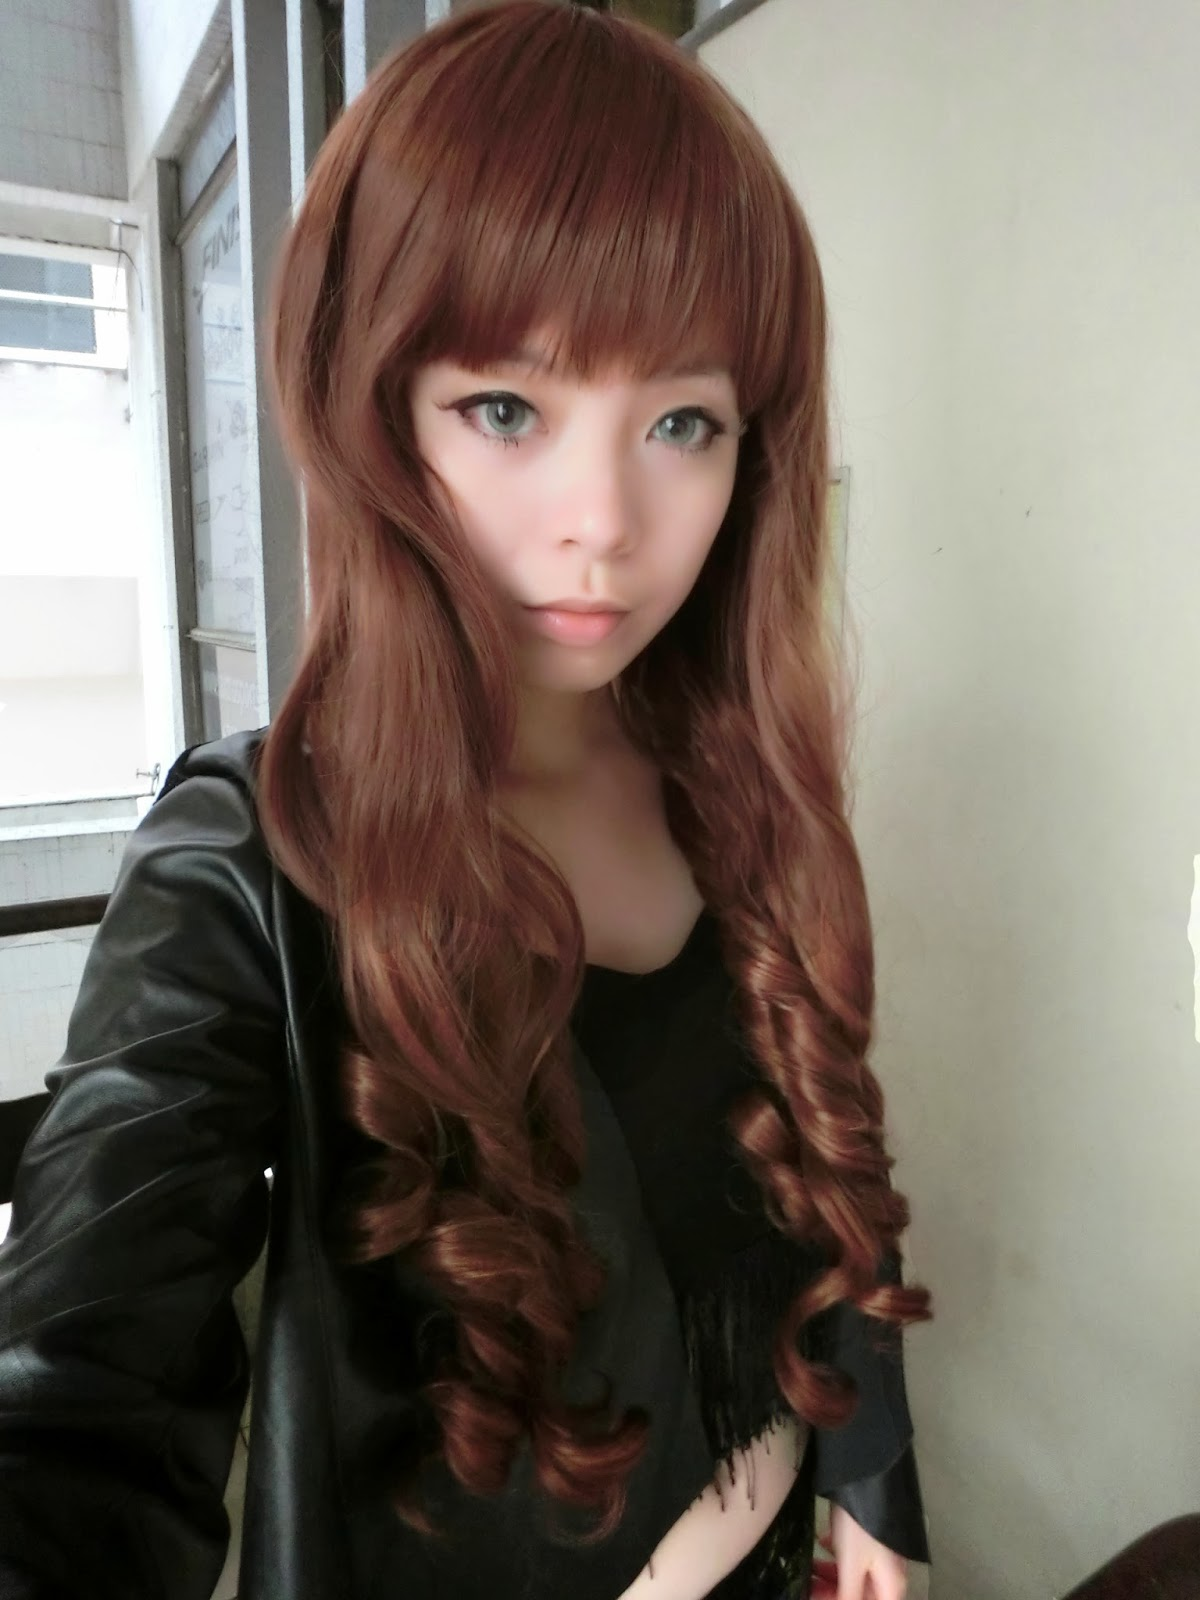 http://2.bp.blogspot.com/-soS4Zz8k348/UyGF0e9oSUI/AAAAAAAARog/wgdWT98-ONA/s1600/CIMG0010++girlhairdo+wig+shop+where+to+buy+wig+nice+curly+long+wig+singapore+hair+extensions.JPG